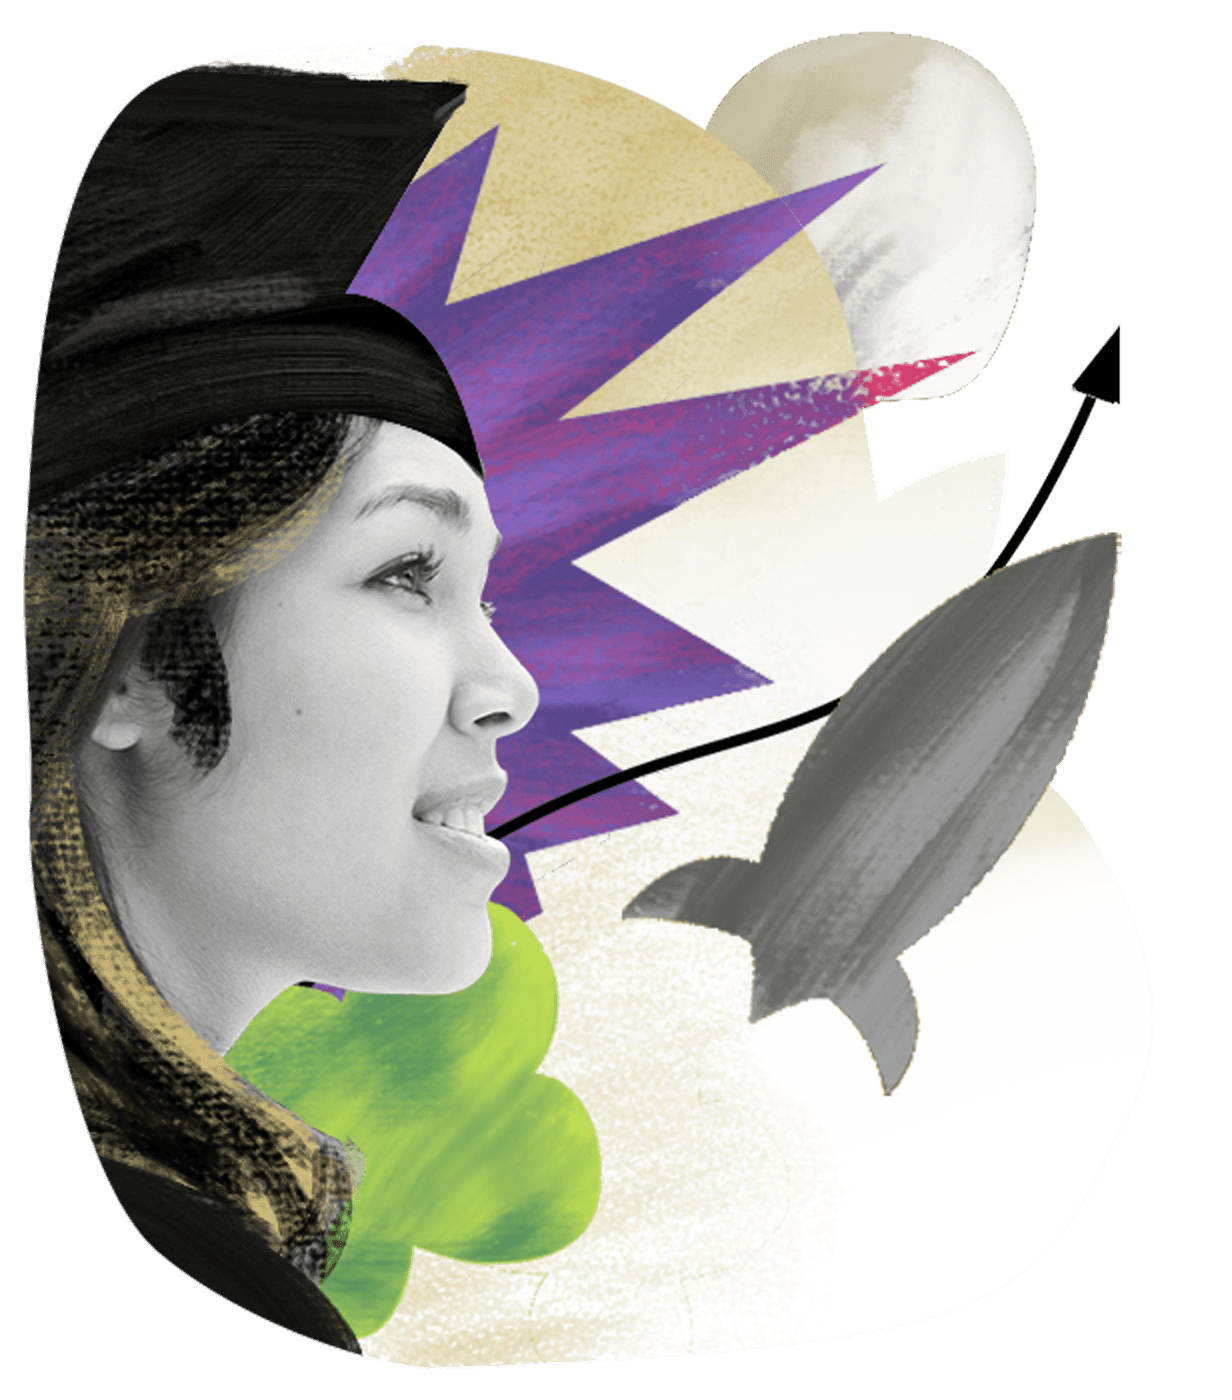 Financials graphic - woman looking upwards with rocket graphic and arrow line pointing up